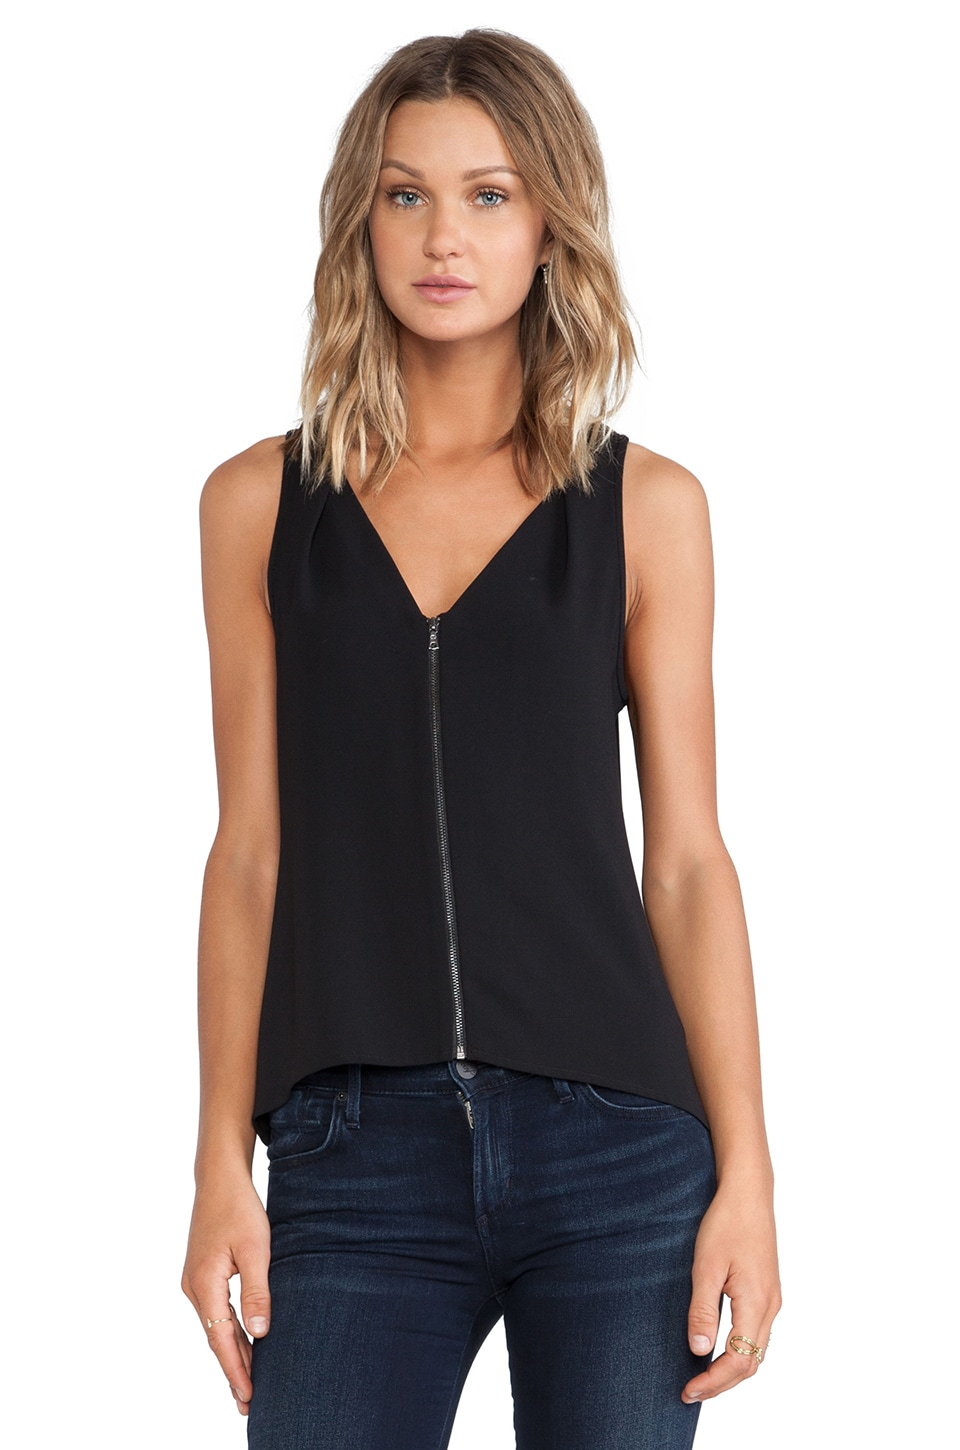 Trina Turk Banning Top in Black